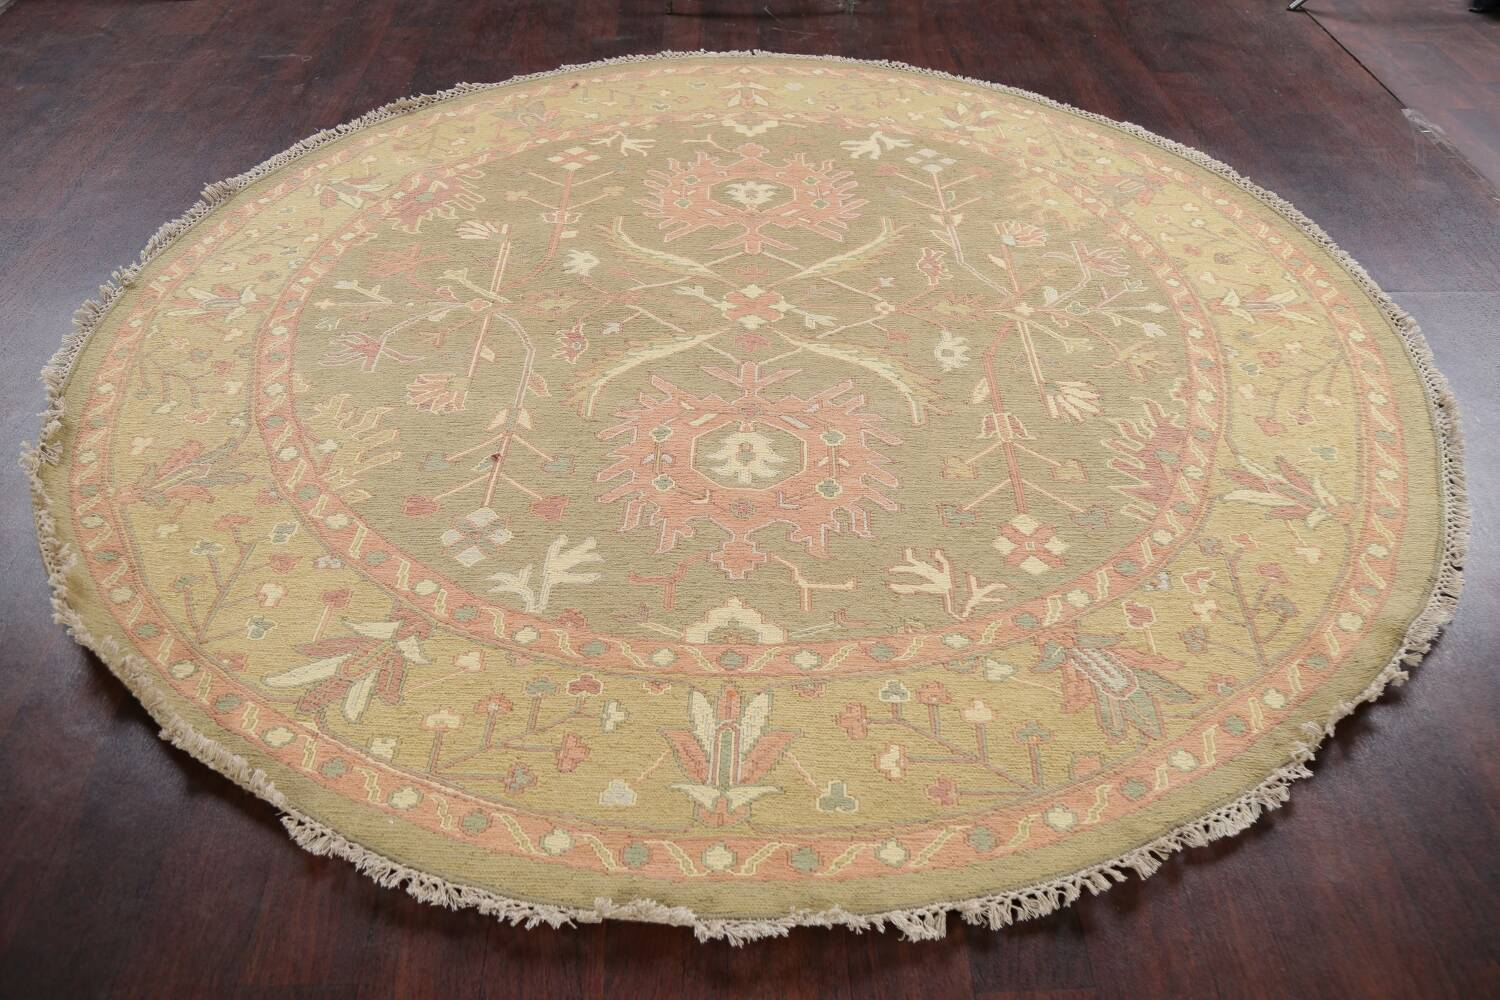 All-Over Green Floral Sumak Oriental Area Rug 8x8 Roud image 13